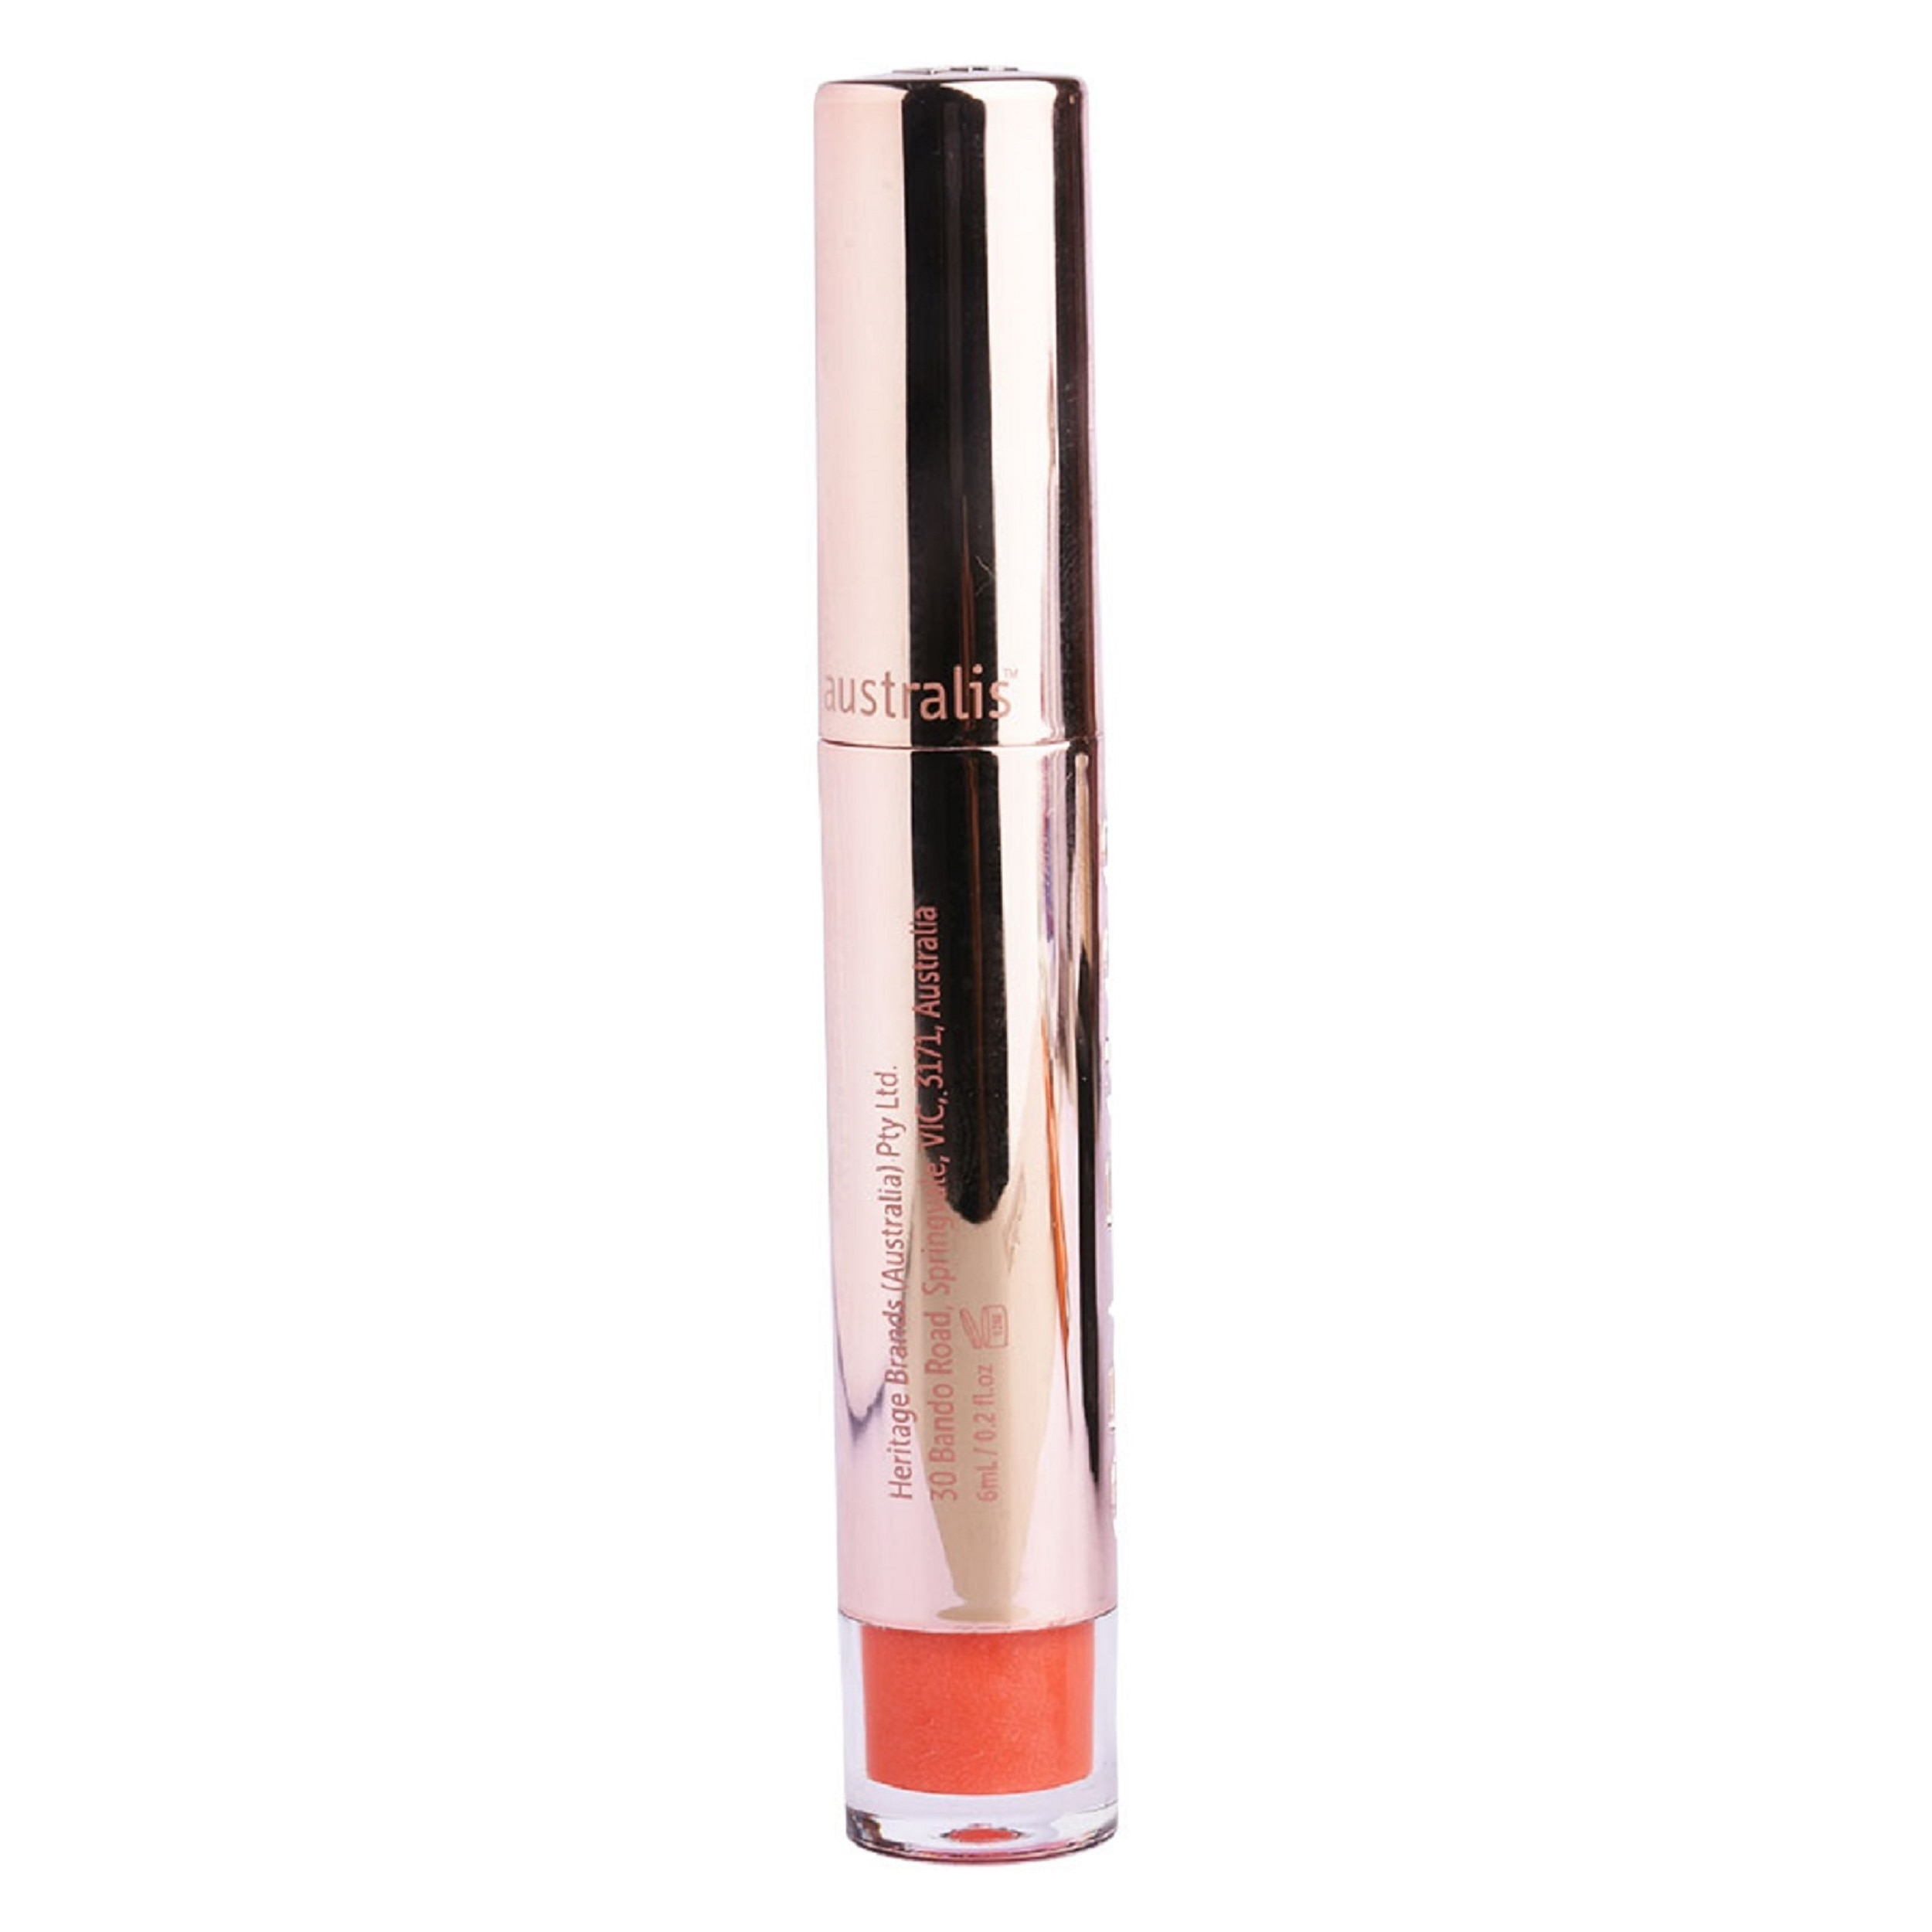 AUSTRALISGRLBOSS Demi Matte Lip Cream - C Note 84123,Lipstick , Lip Tint and Lipliners2% off – min spend P600 (code: PLUS2), 4% off – min spend P800 (code: PLUS4), 8% off – min spend P1,000 (code: PLUS8) - Members Only. Promo exclusions: Health items, Milk, B1T1 and Buy xx for xx promos